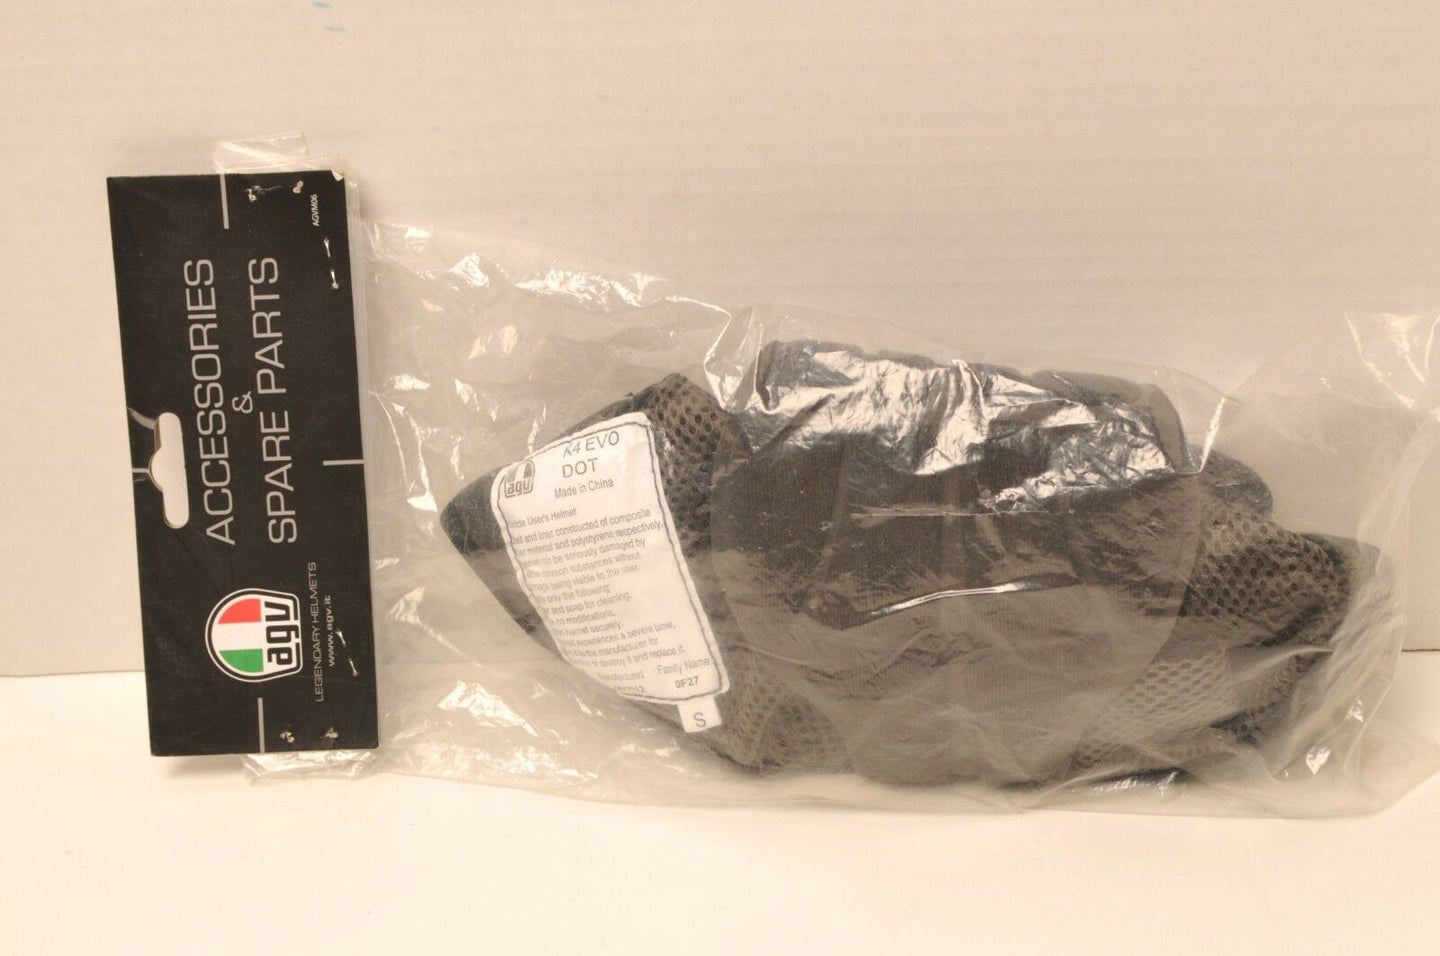 GENUINE AGV Liner Top Crown Pad - KIT00301999 K-4 K4 Evo Helmet S Small